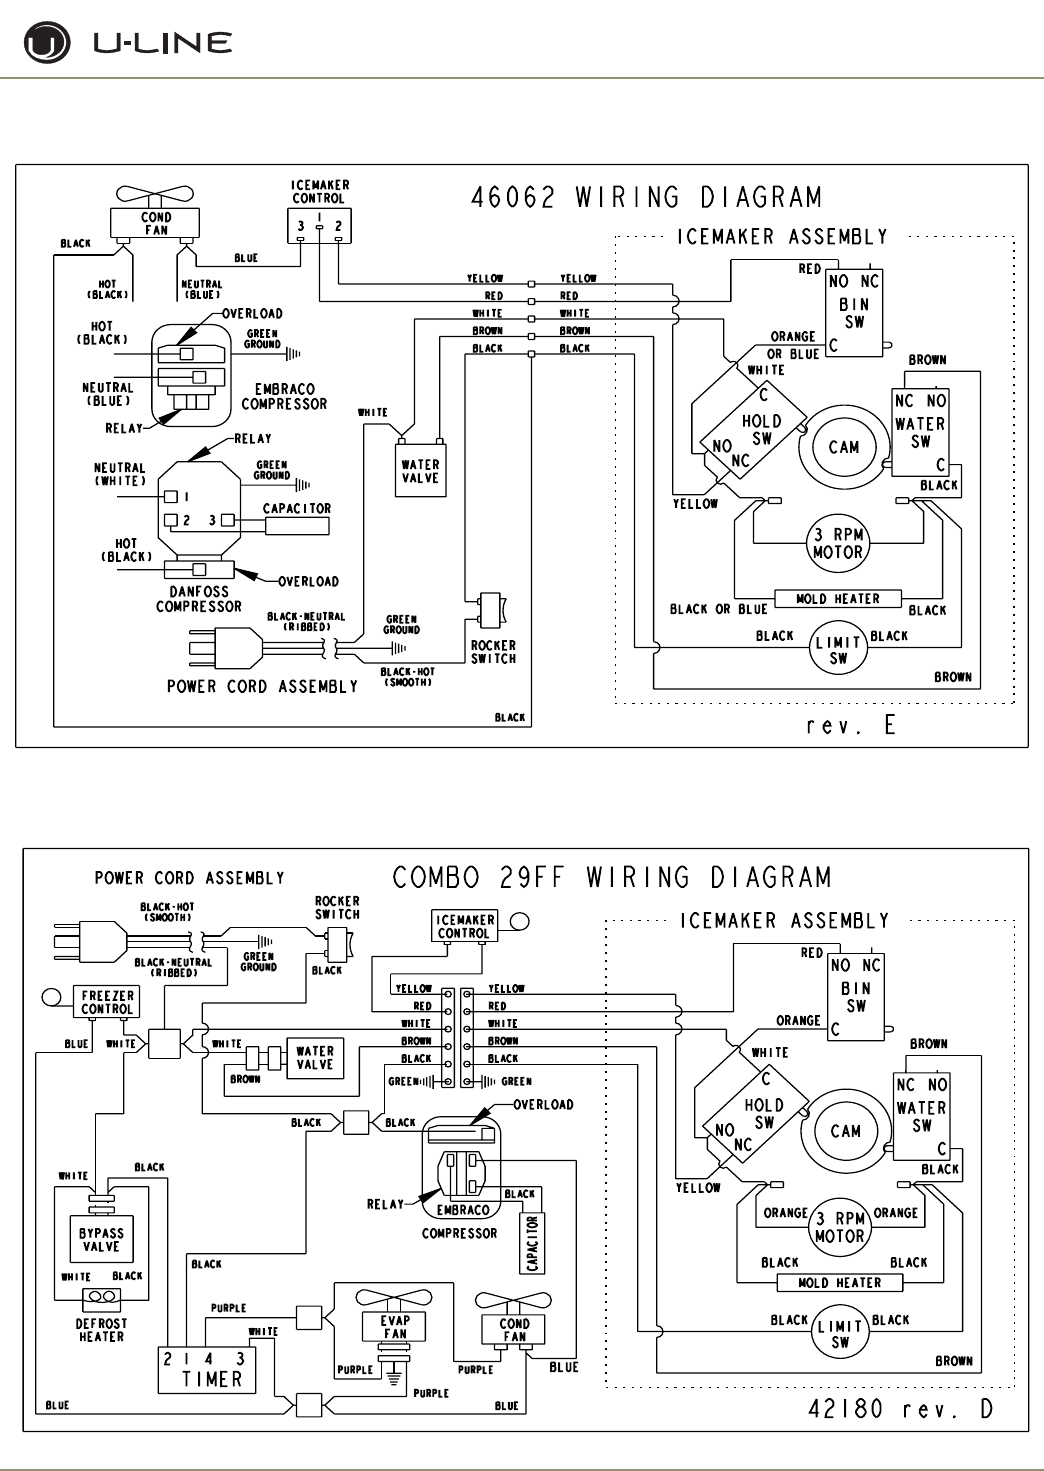 7502df08 1fff 4576 9ce4 e53bc1eea1d4 bg3e page 62 of u line ice maker uln 98 user guide manualsonline com ice maker wiring schematic at crackthecode.co